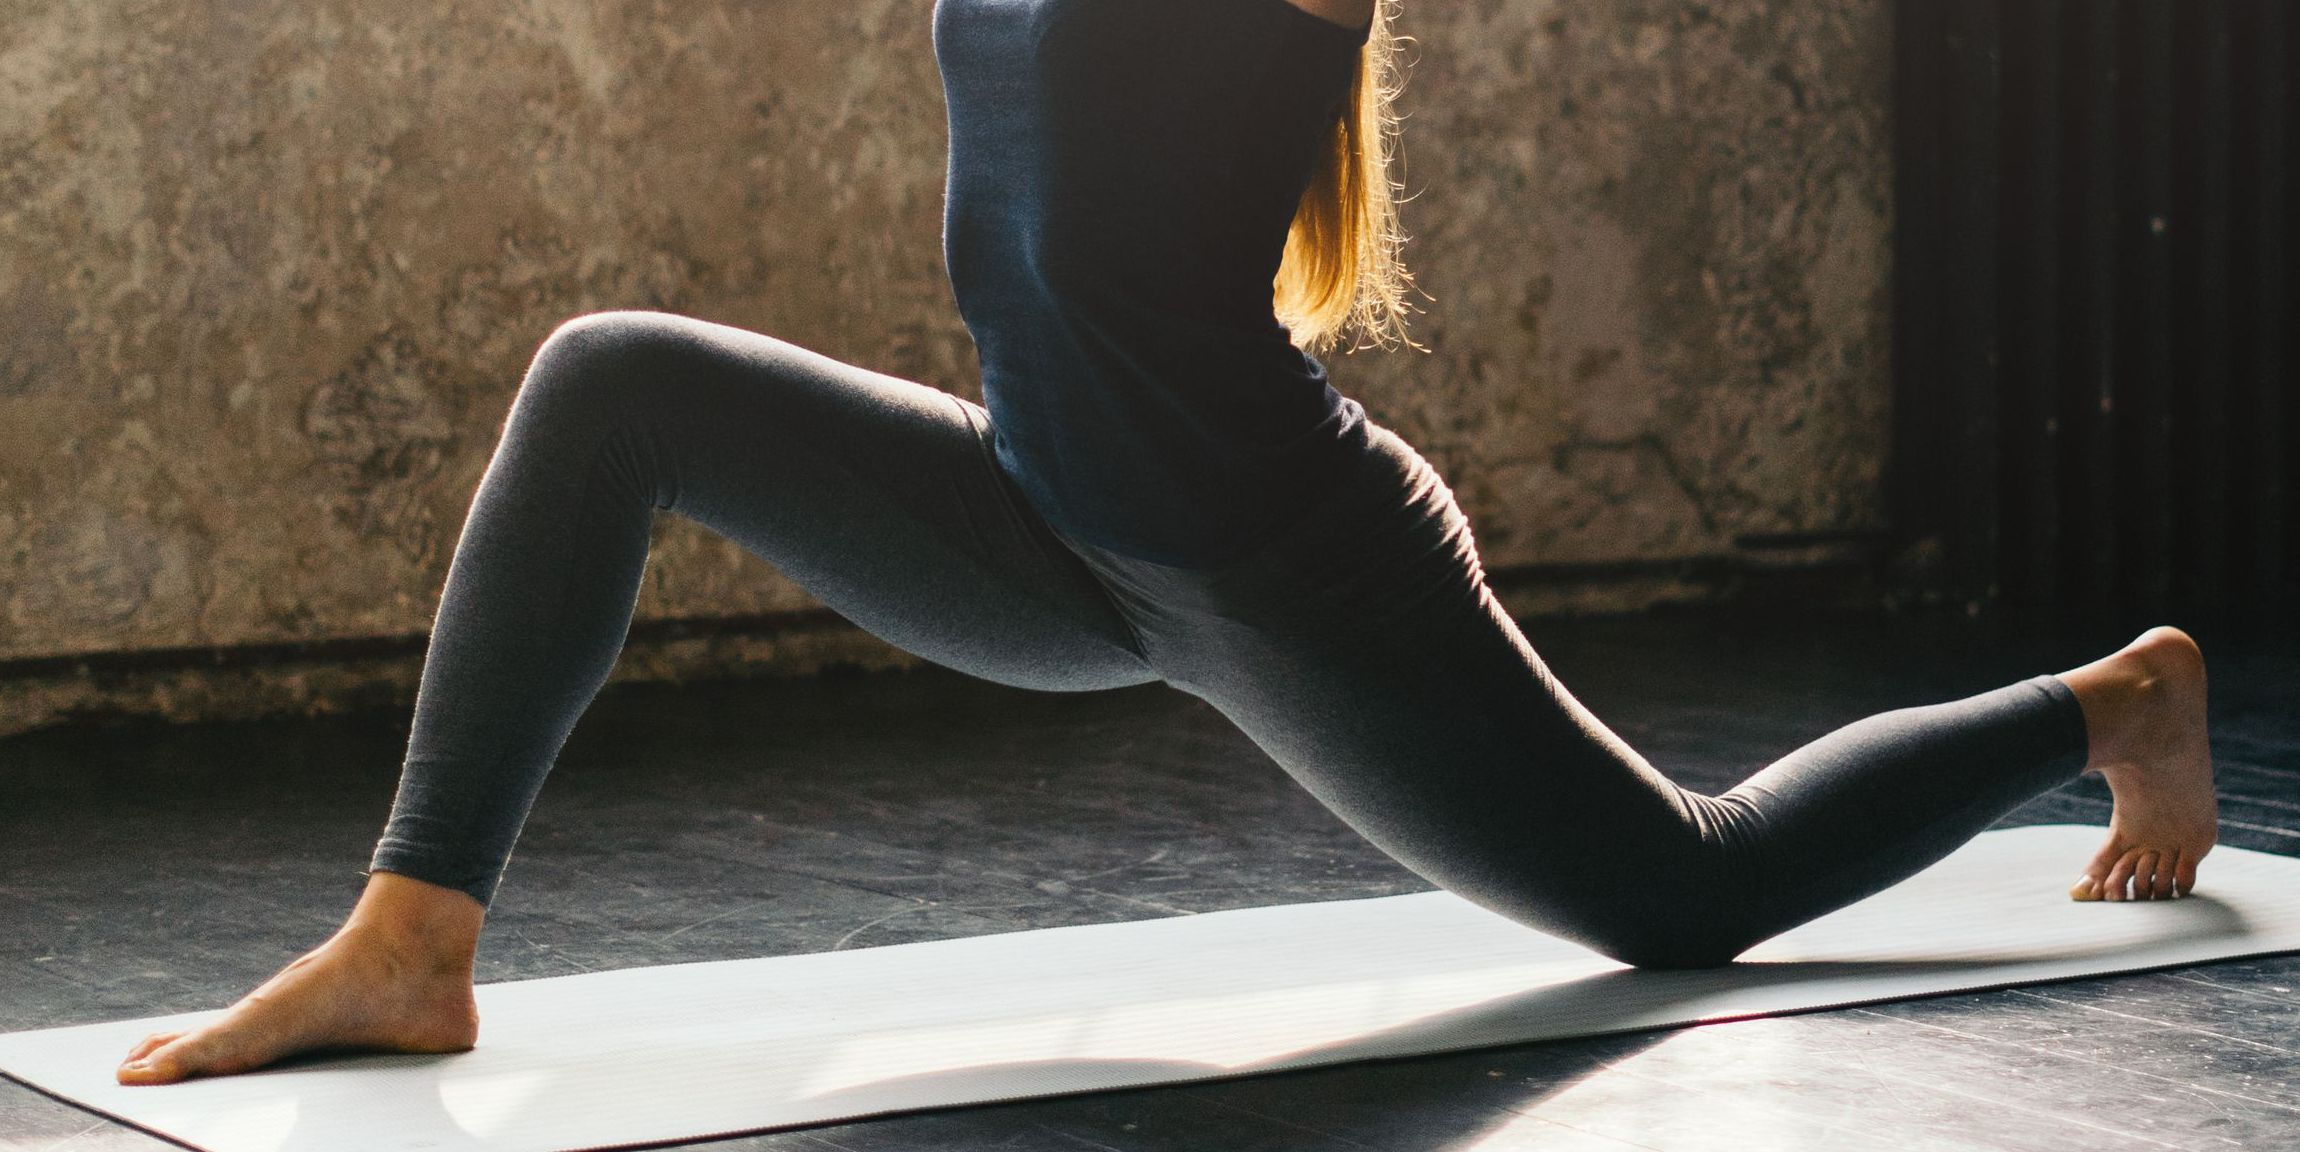 5 Best Stretches to Treat a Pulled Groin, According to a Physical Therapist